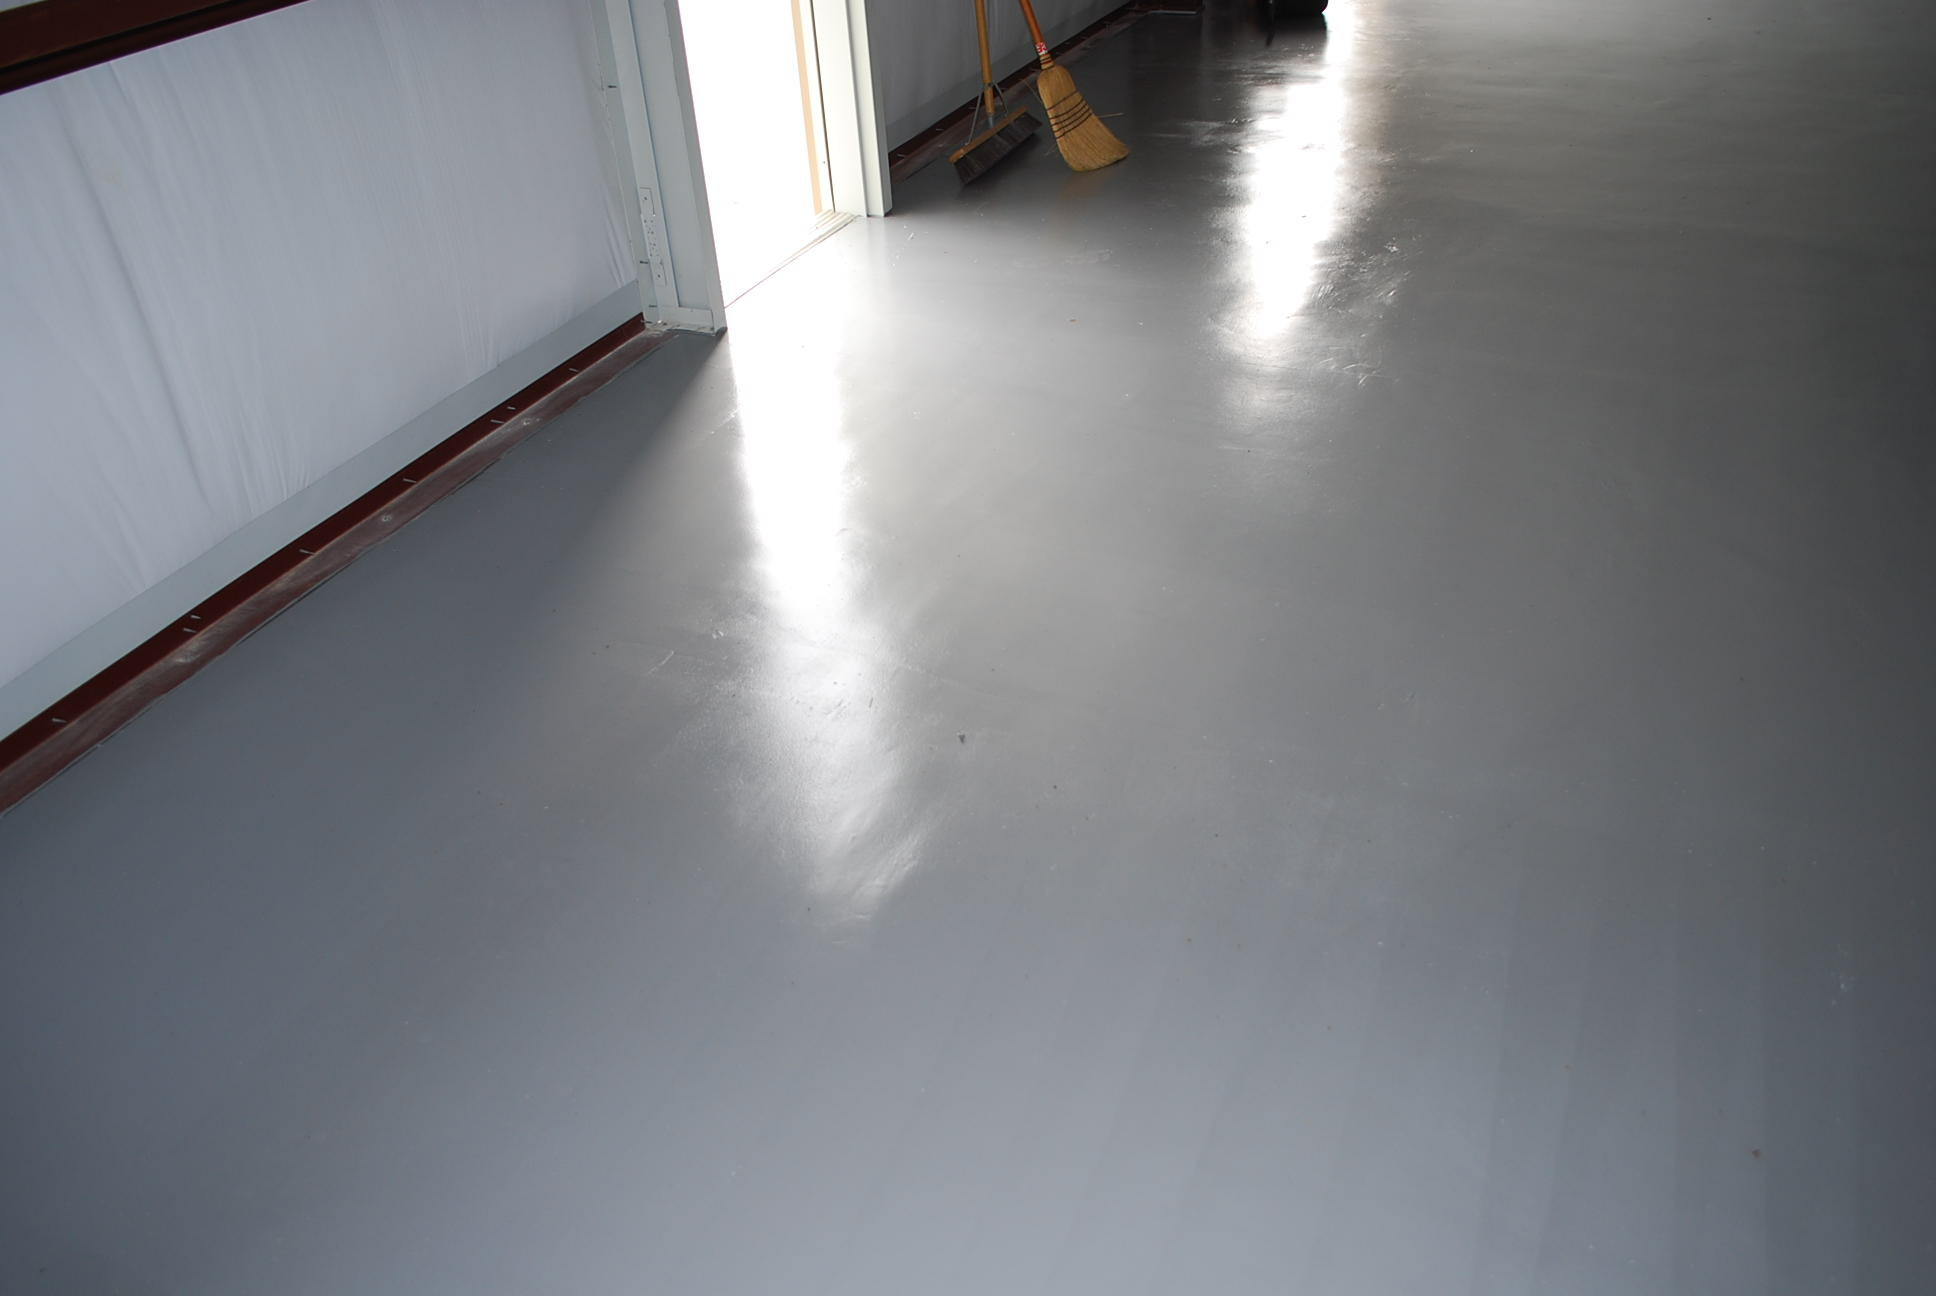 Garage Epoxy Cure Time What To Know About Garage Floor Coatings Justin S Brain Dump